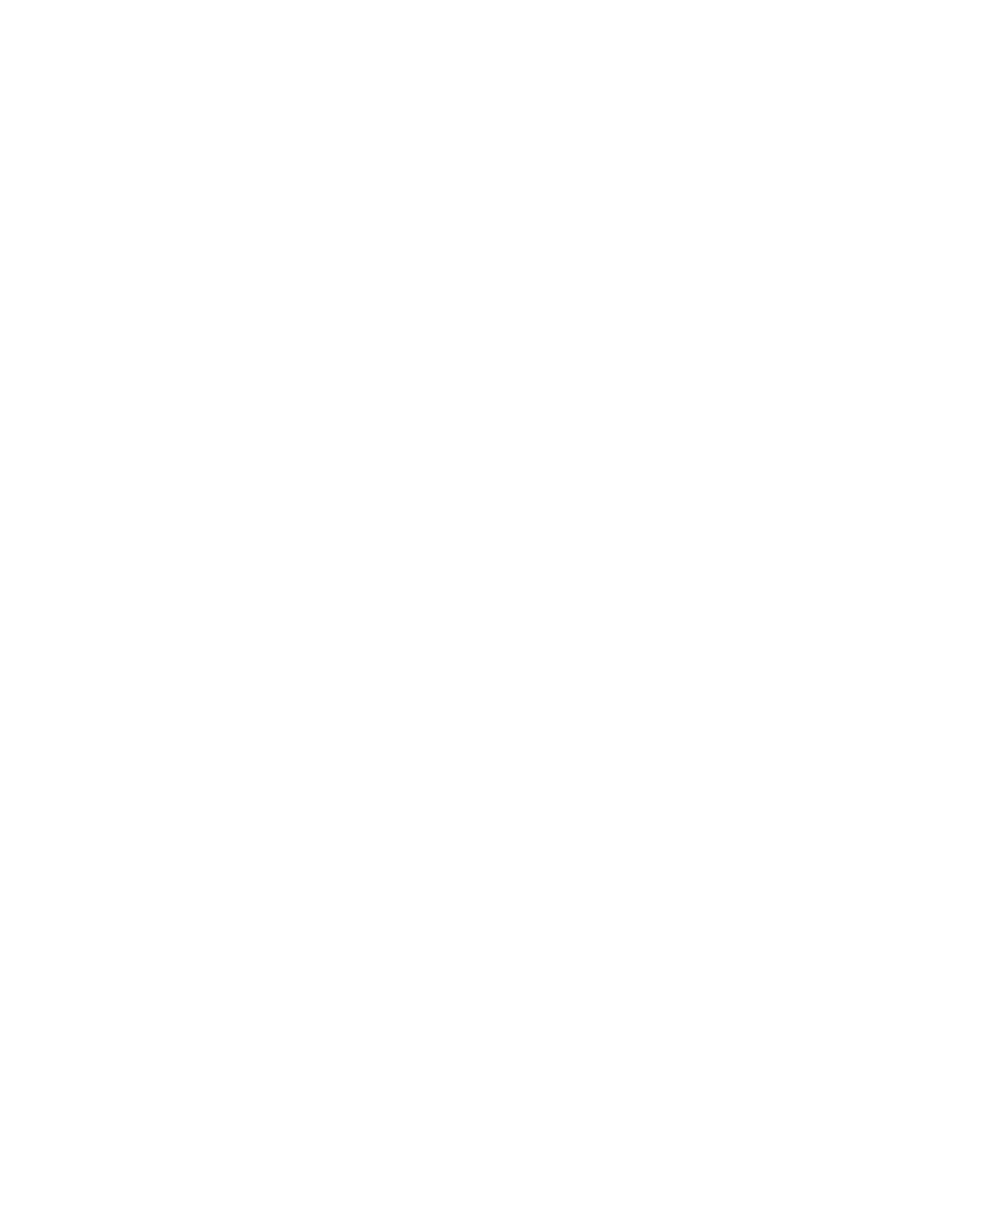 Hotel-A-logo-1.png